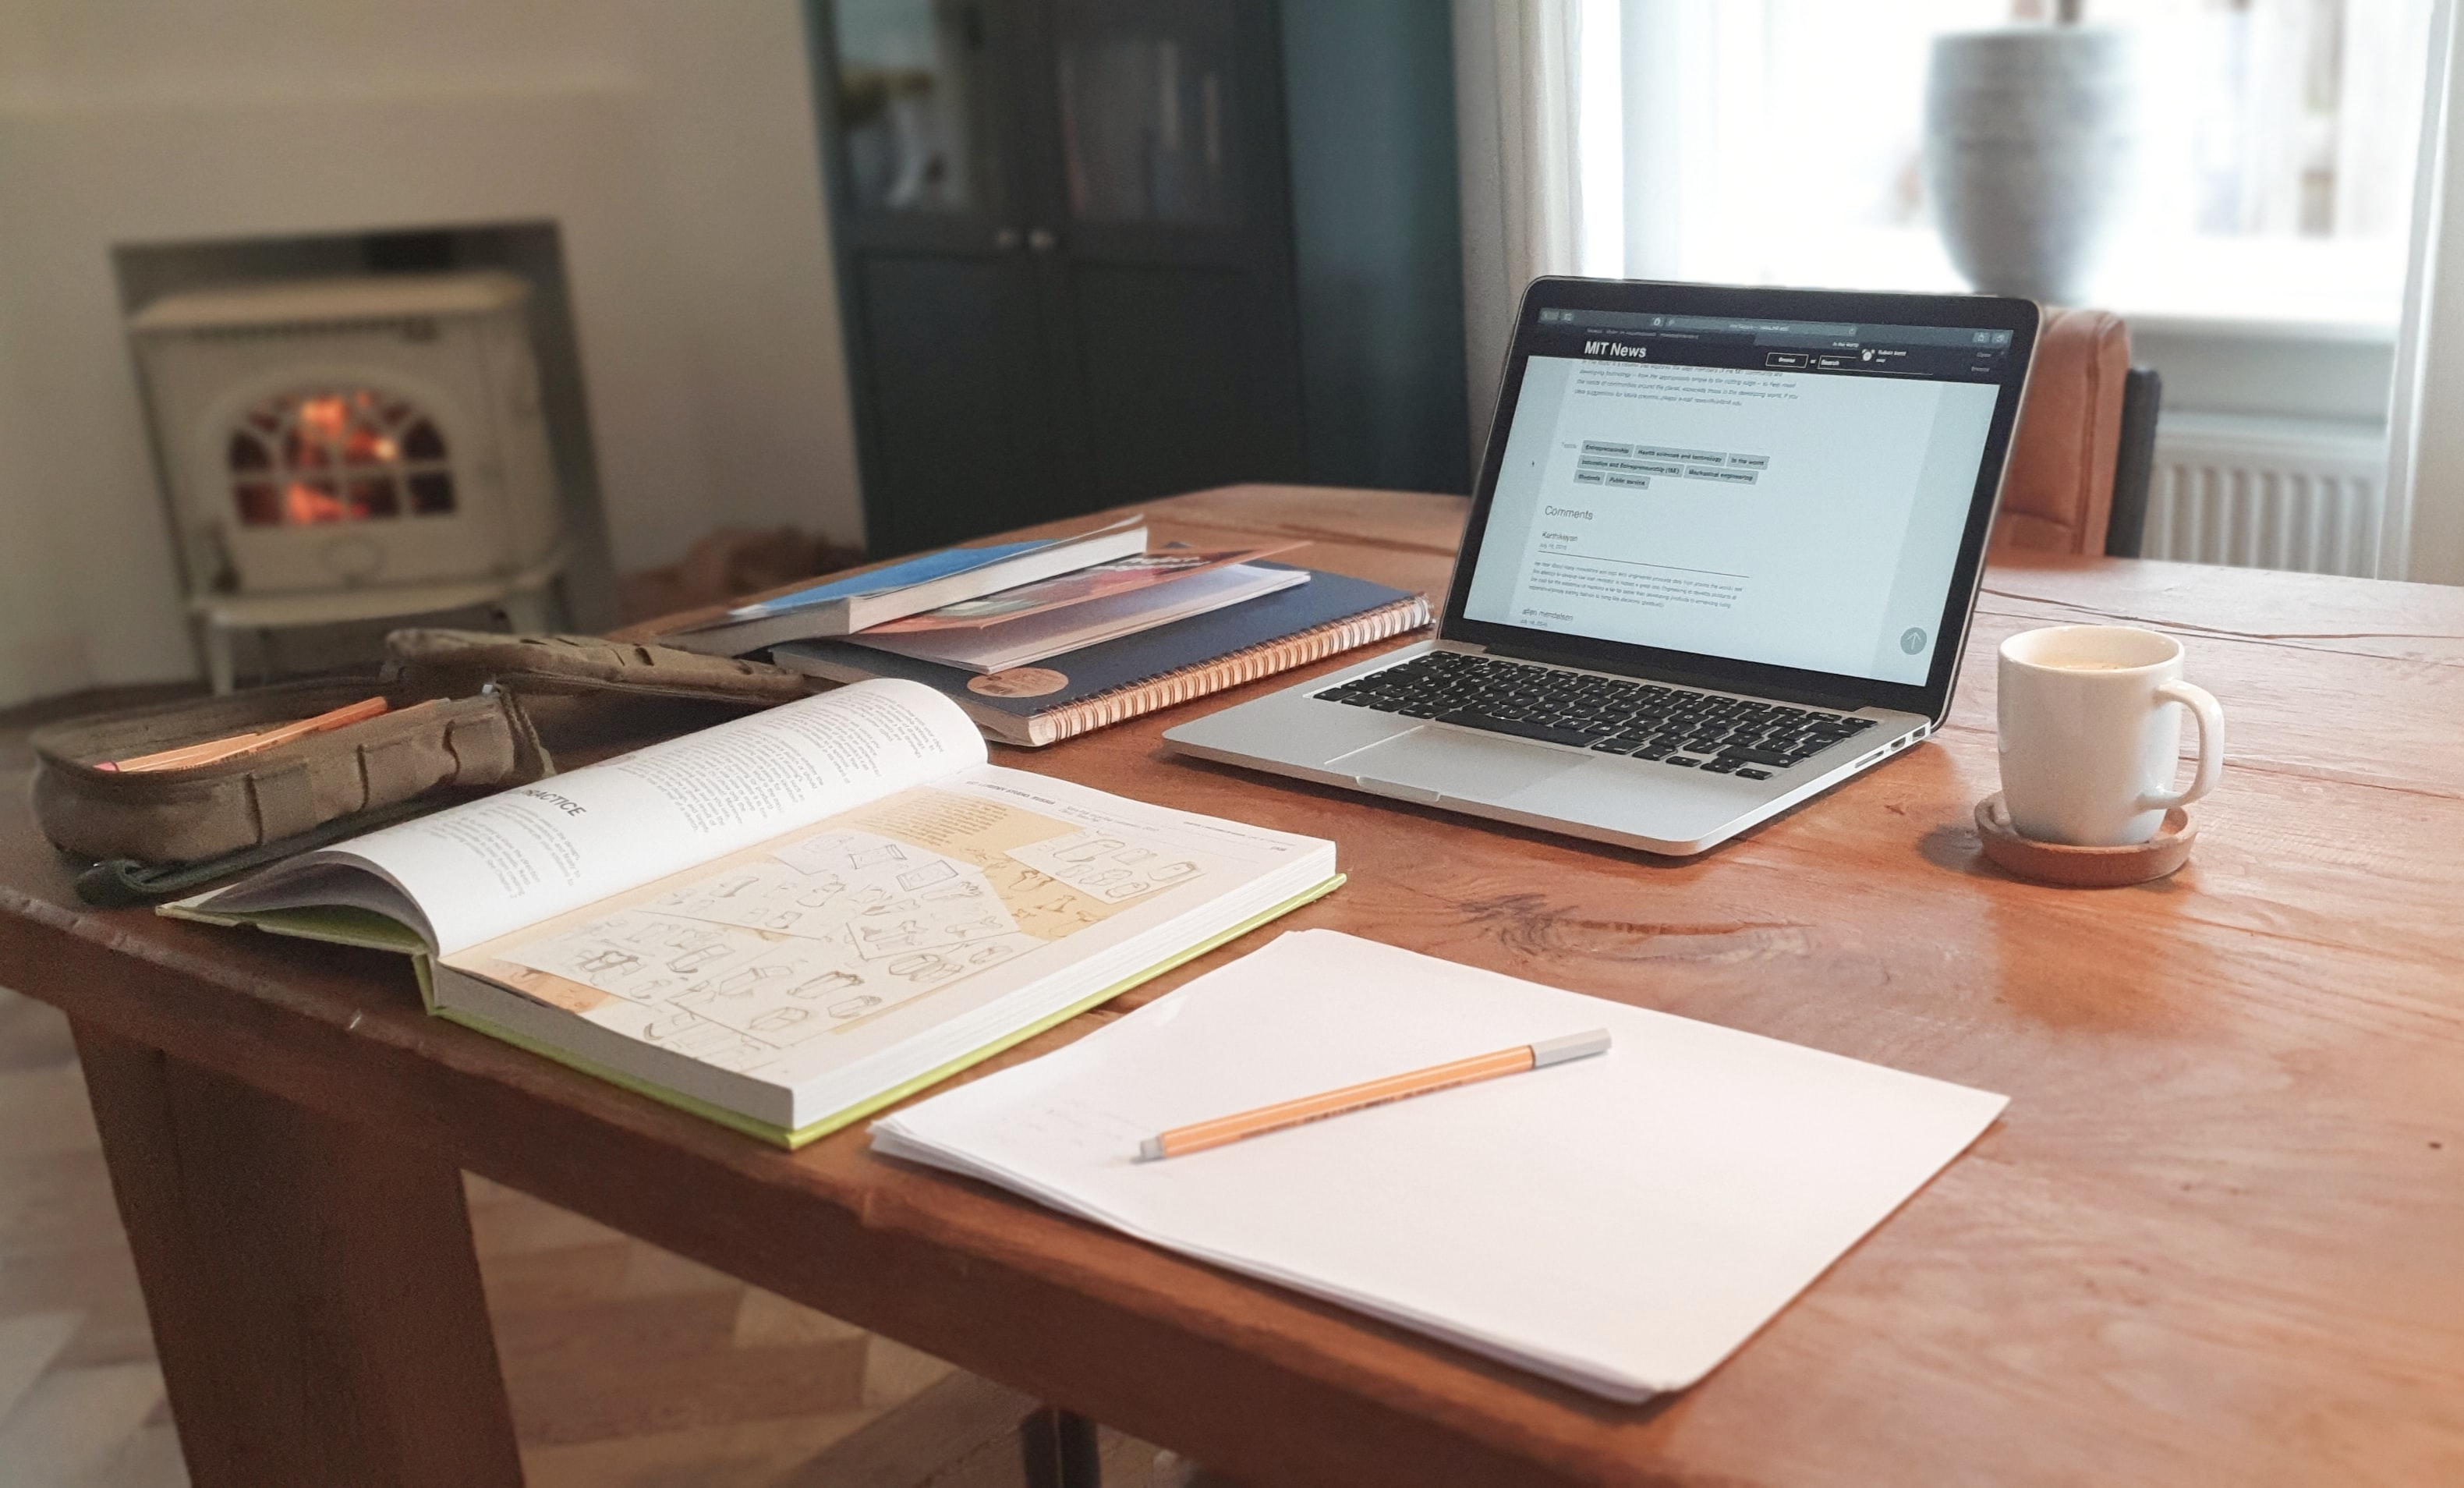 An open desk has a few journals and a laptop. Journaling is an excellent way to reflect and build gratitude.